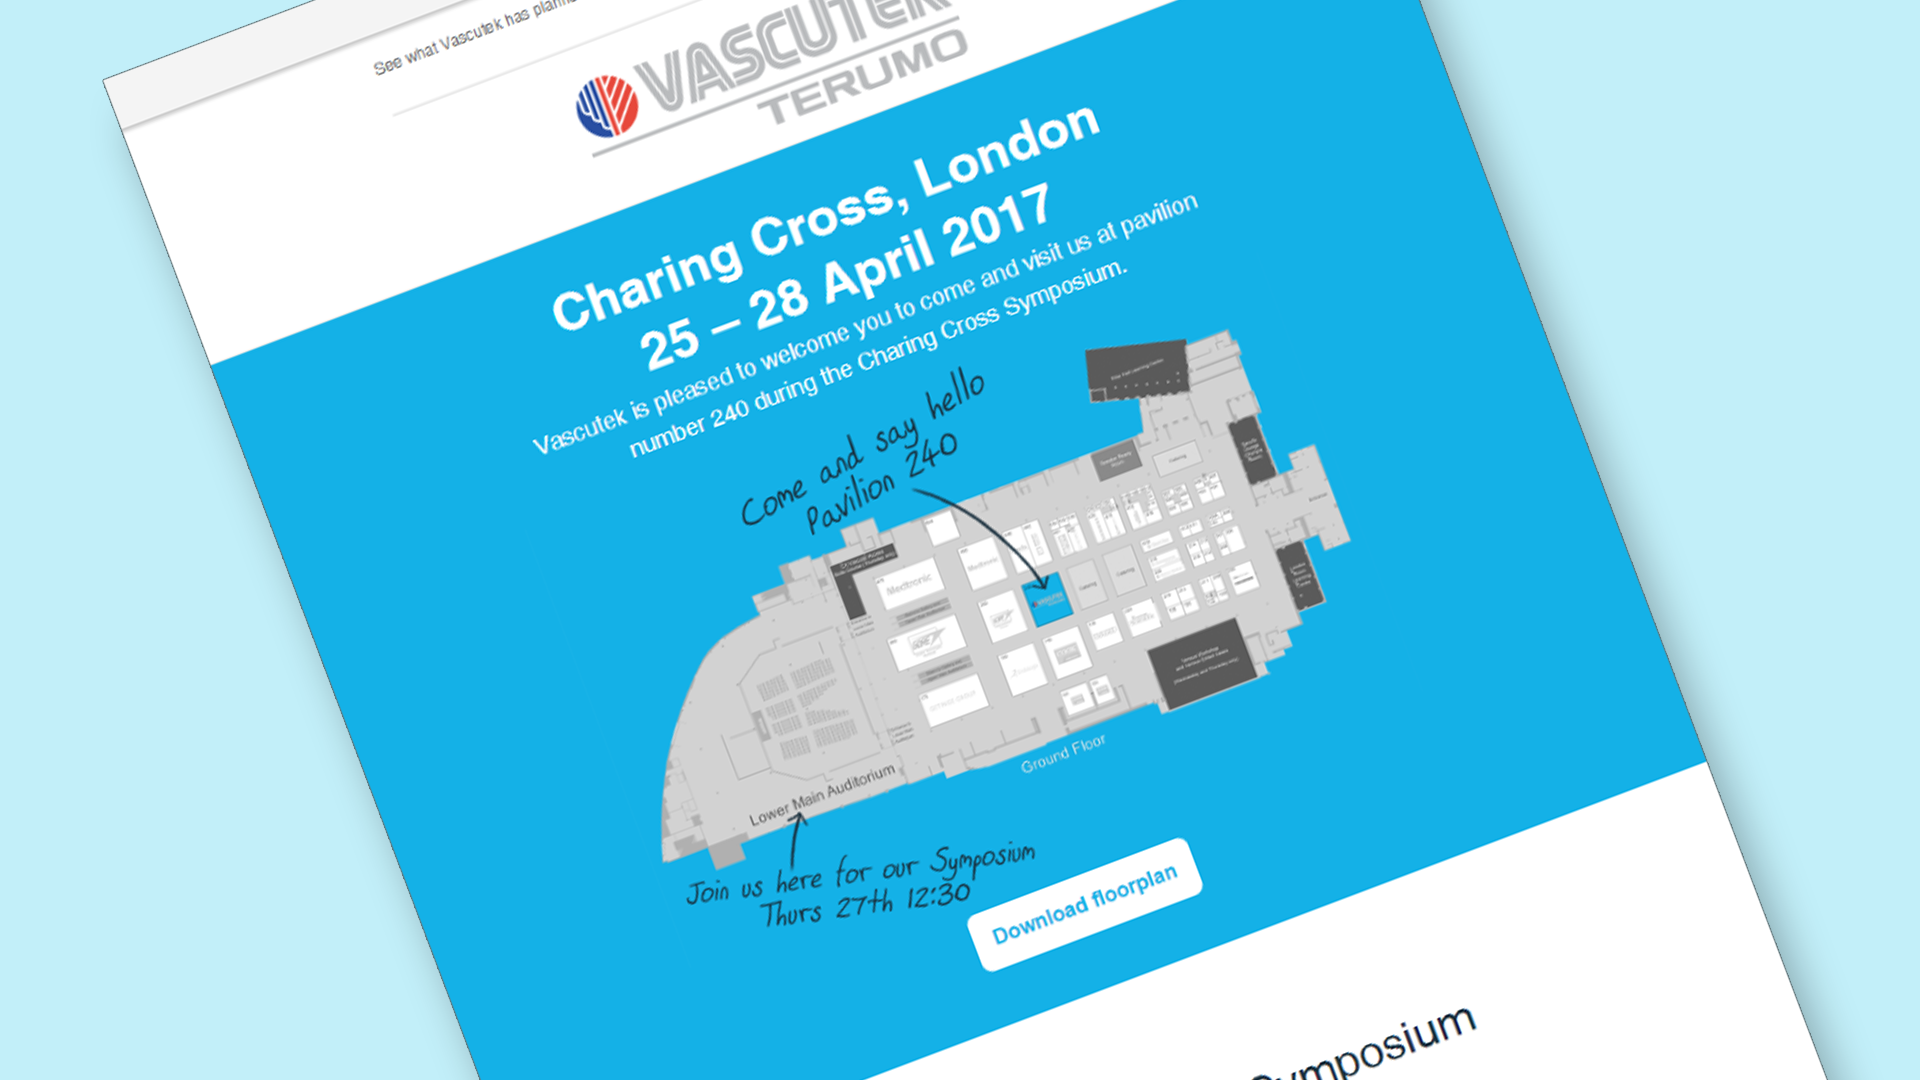 We wanted to make it easy for people to find Vascutek at the congress. Included in each communication were images and downloads of floorplans.